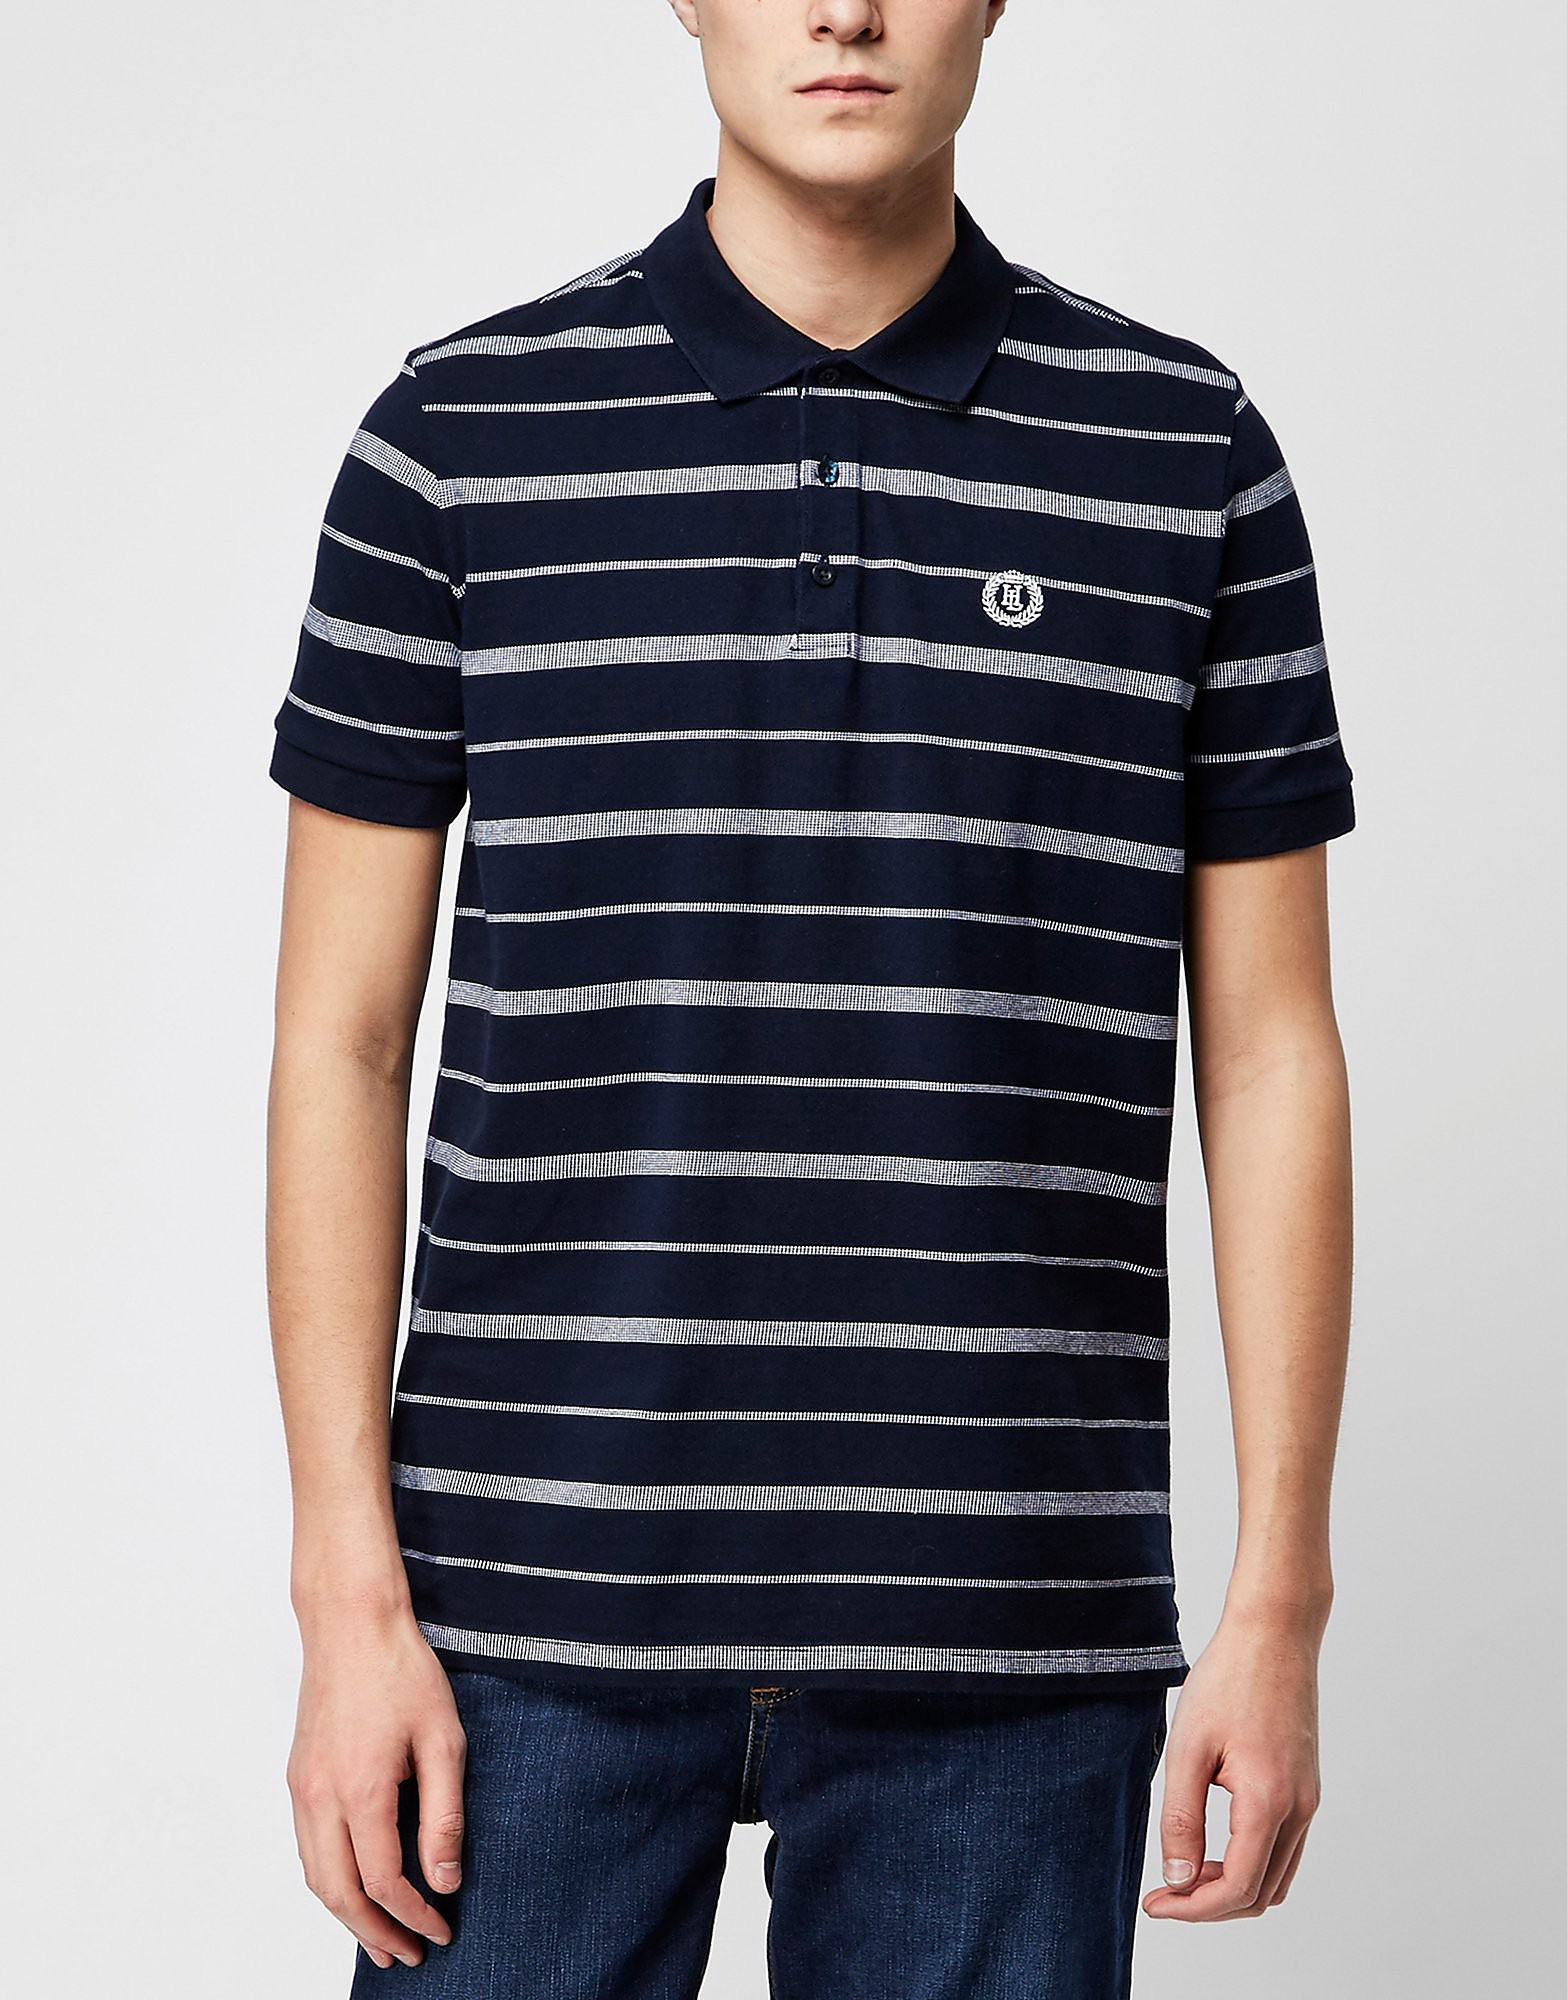 Henri Lloyd Nautique Stripe Polo Shirt  Navy Navy